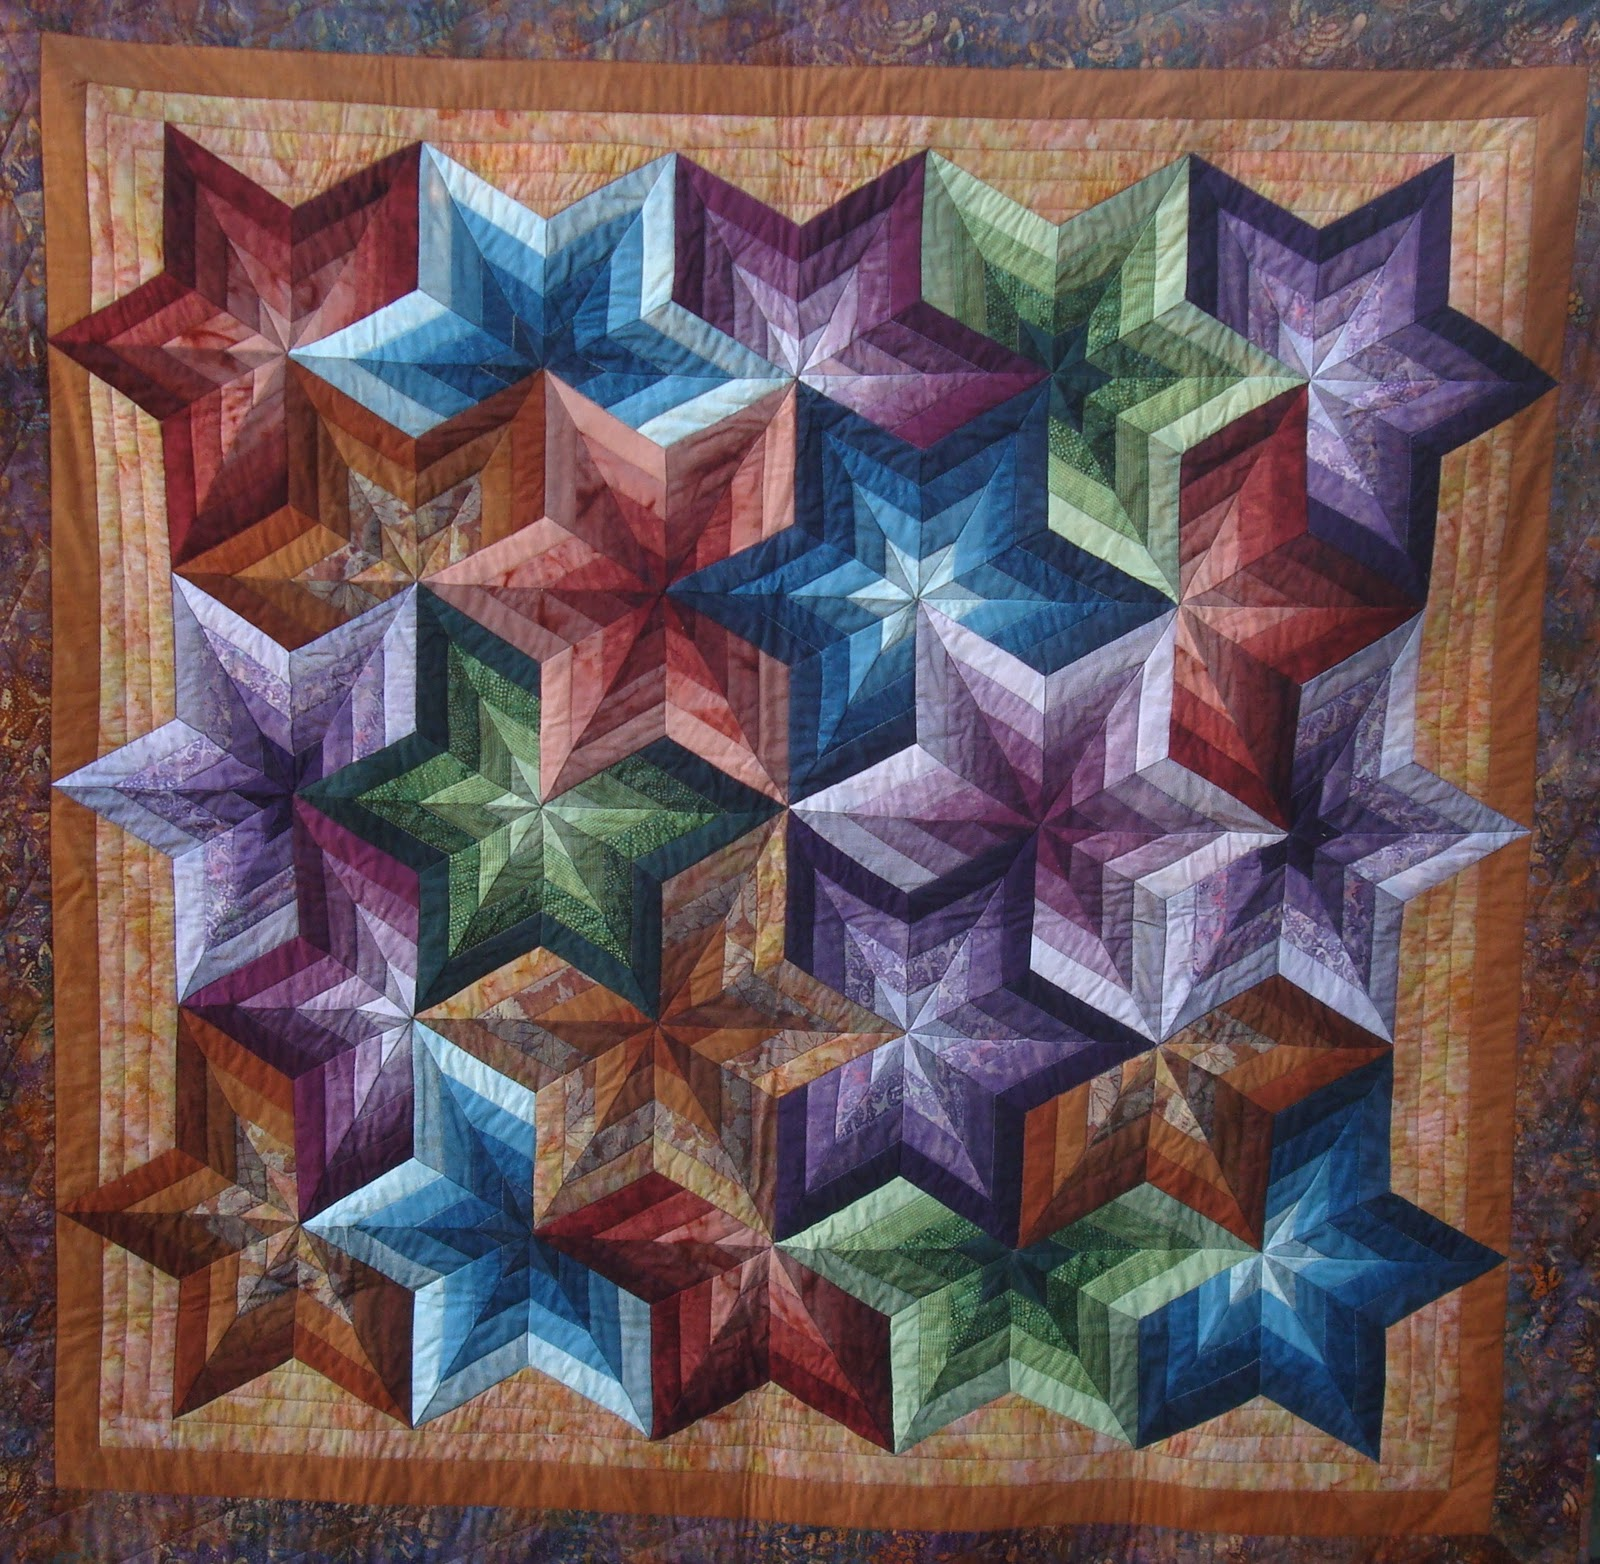 Patterns Gallery: QuiltinGal Barbara H. Cline: Gallery II